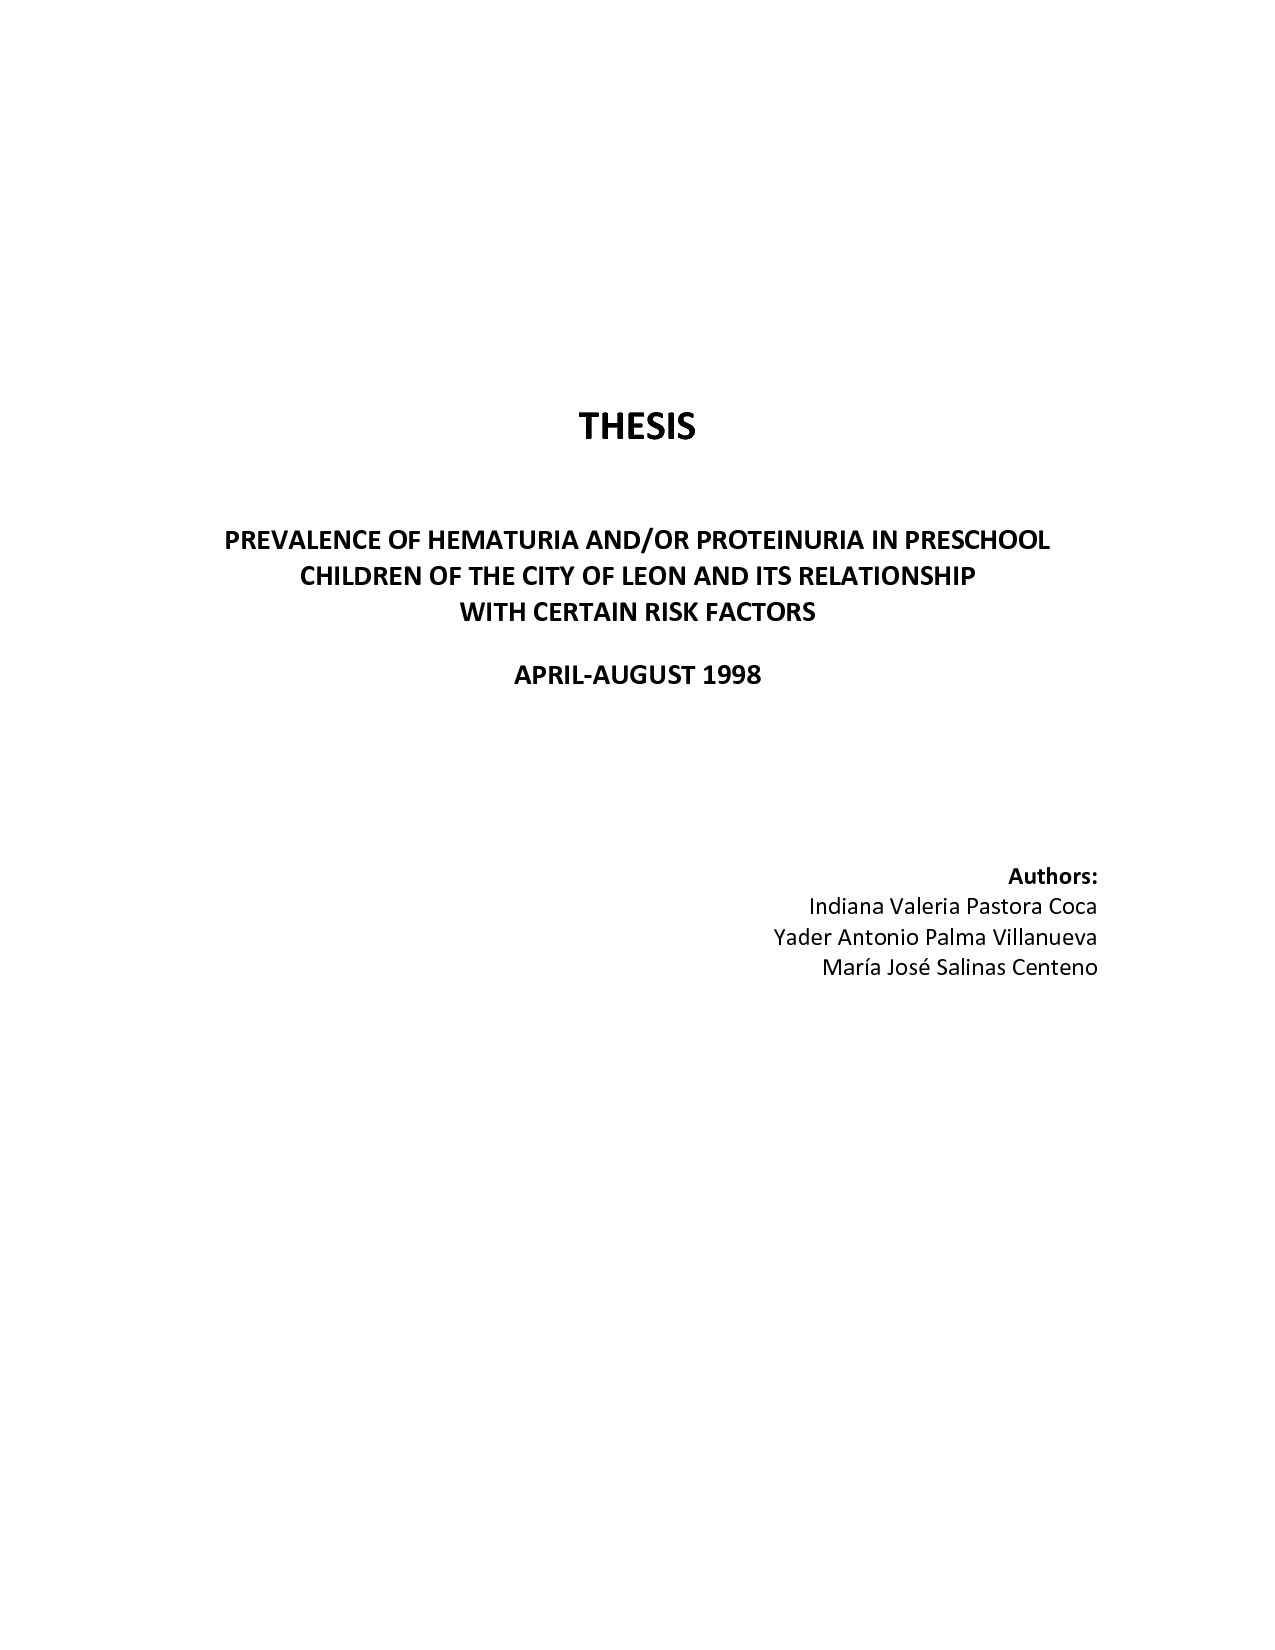 This thesis is dedicated to god